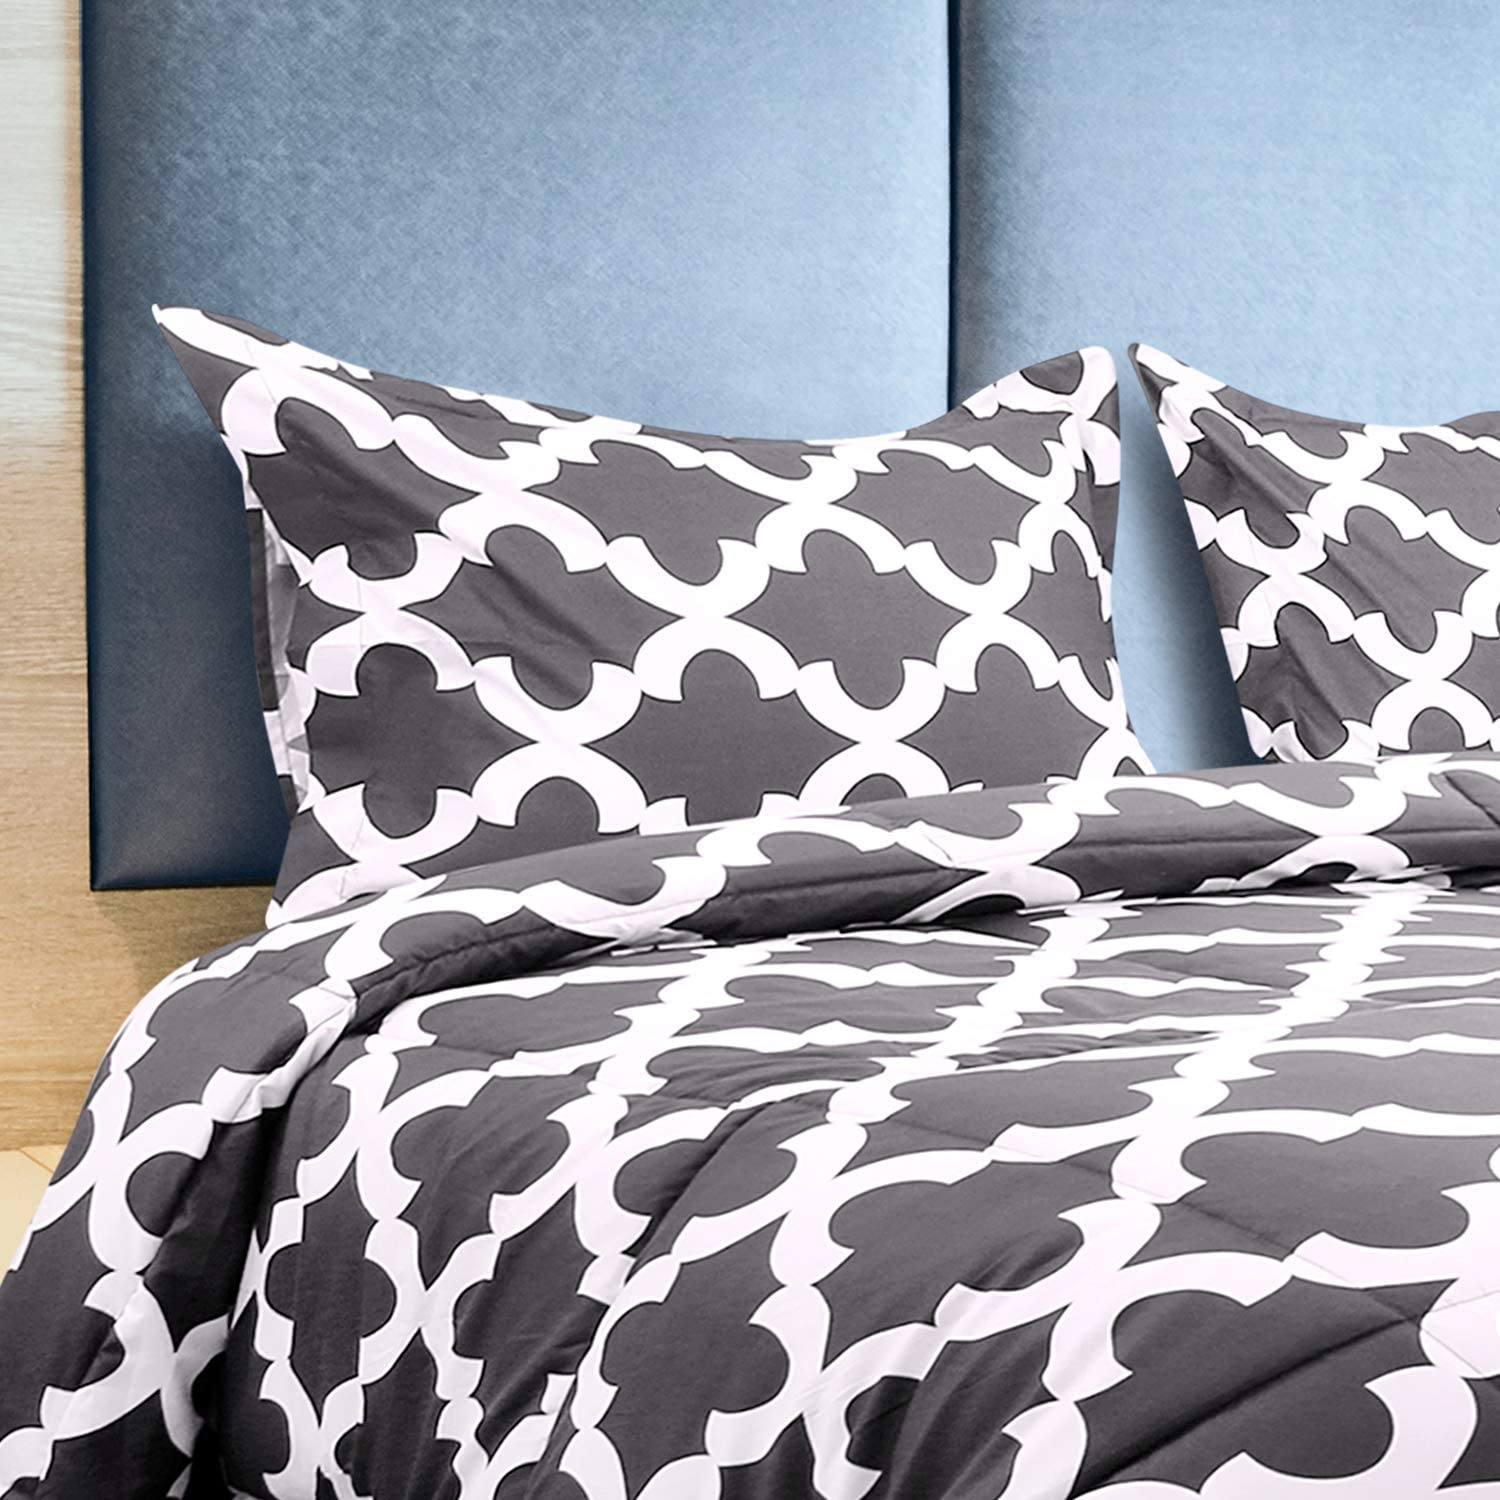 Utopia Bedding Printed Comforter Set (Queen, Grey) with 2 Pillow Shams - Luxurious Brushed Microfiber - Down Alternative Comforter - Soft and Comfortable - Machine Washable: Home & Kitchen